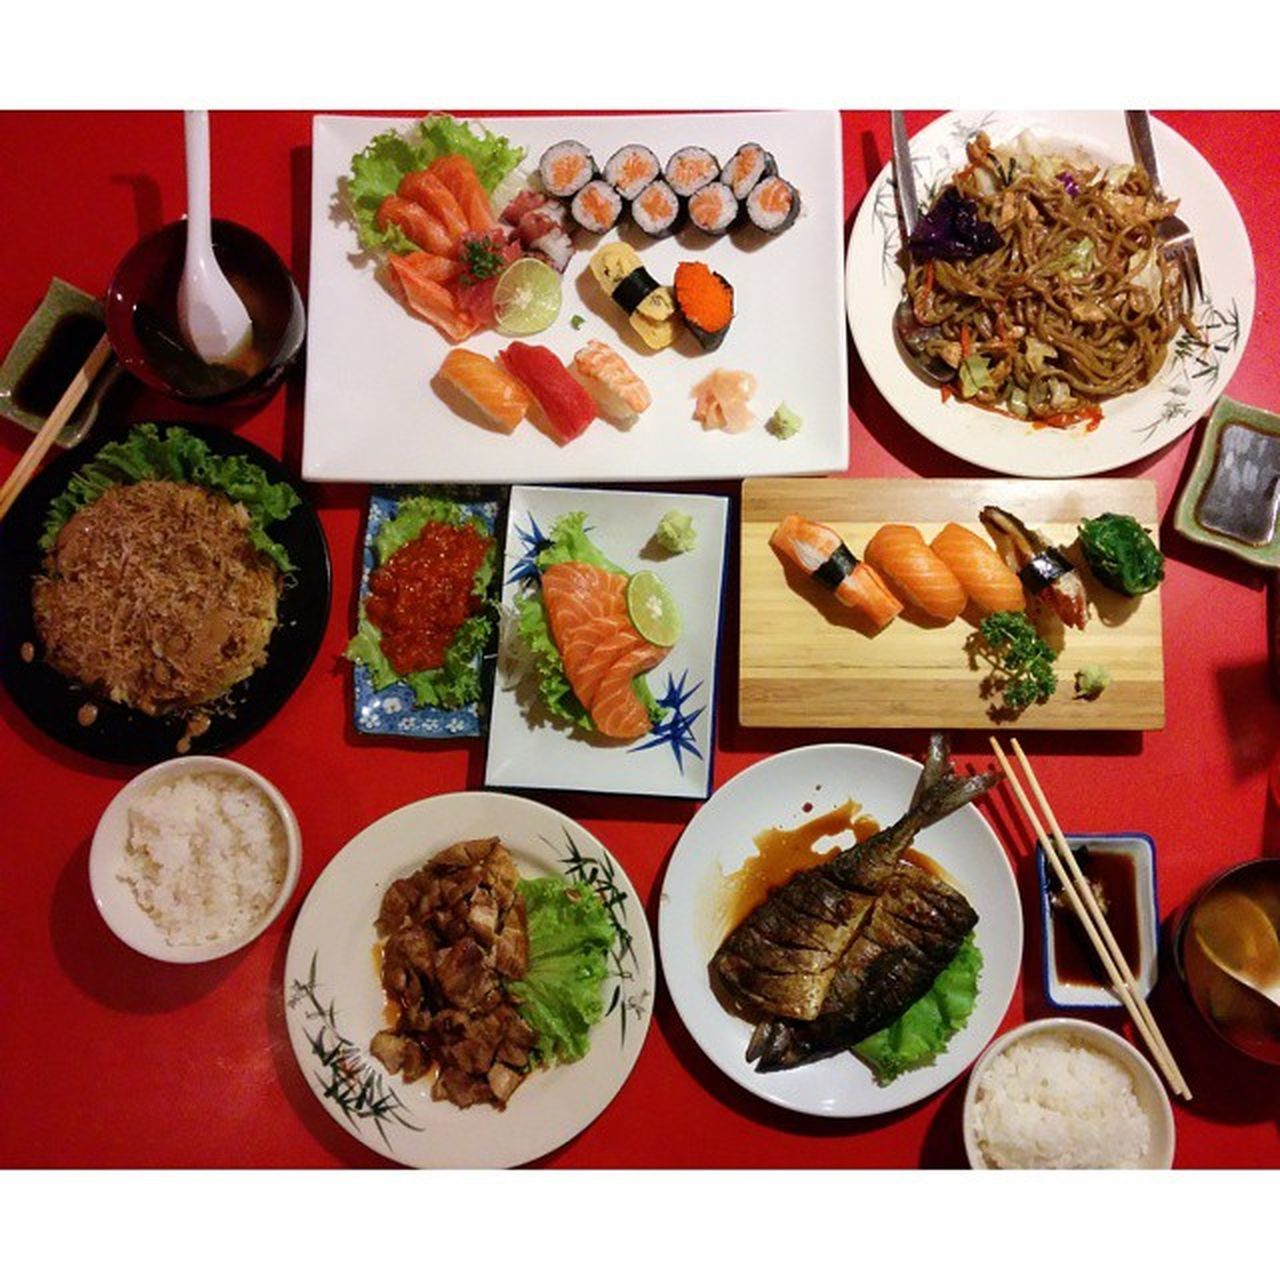 food and drink, food, seafood, freshness, plate, healthy eating, variation, chopsticks, ready-to-eat, japanese food, sushi, table, no people, fish, high angle view, directly above, bowl, indoors, meat, meal, close-up, day